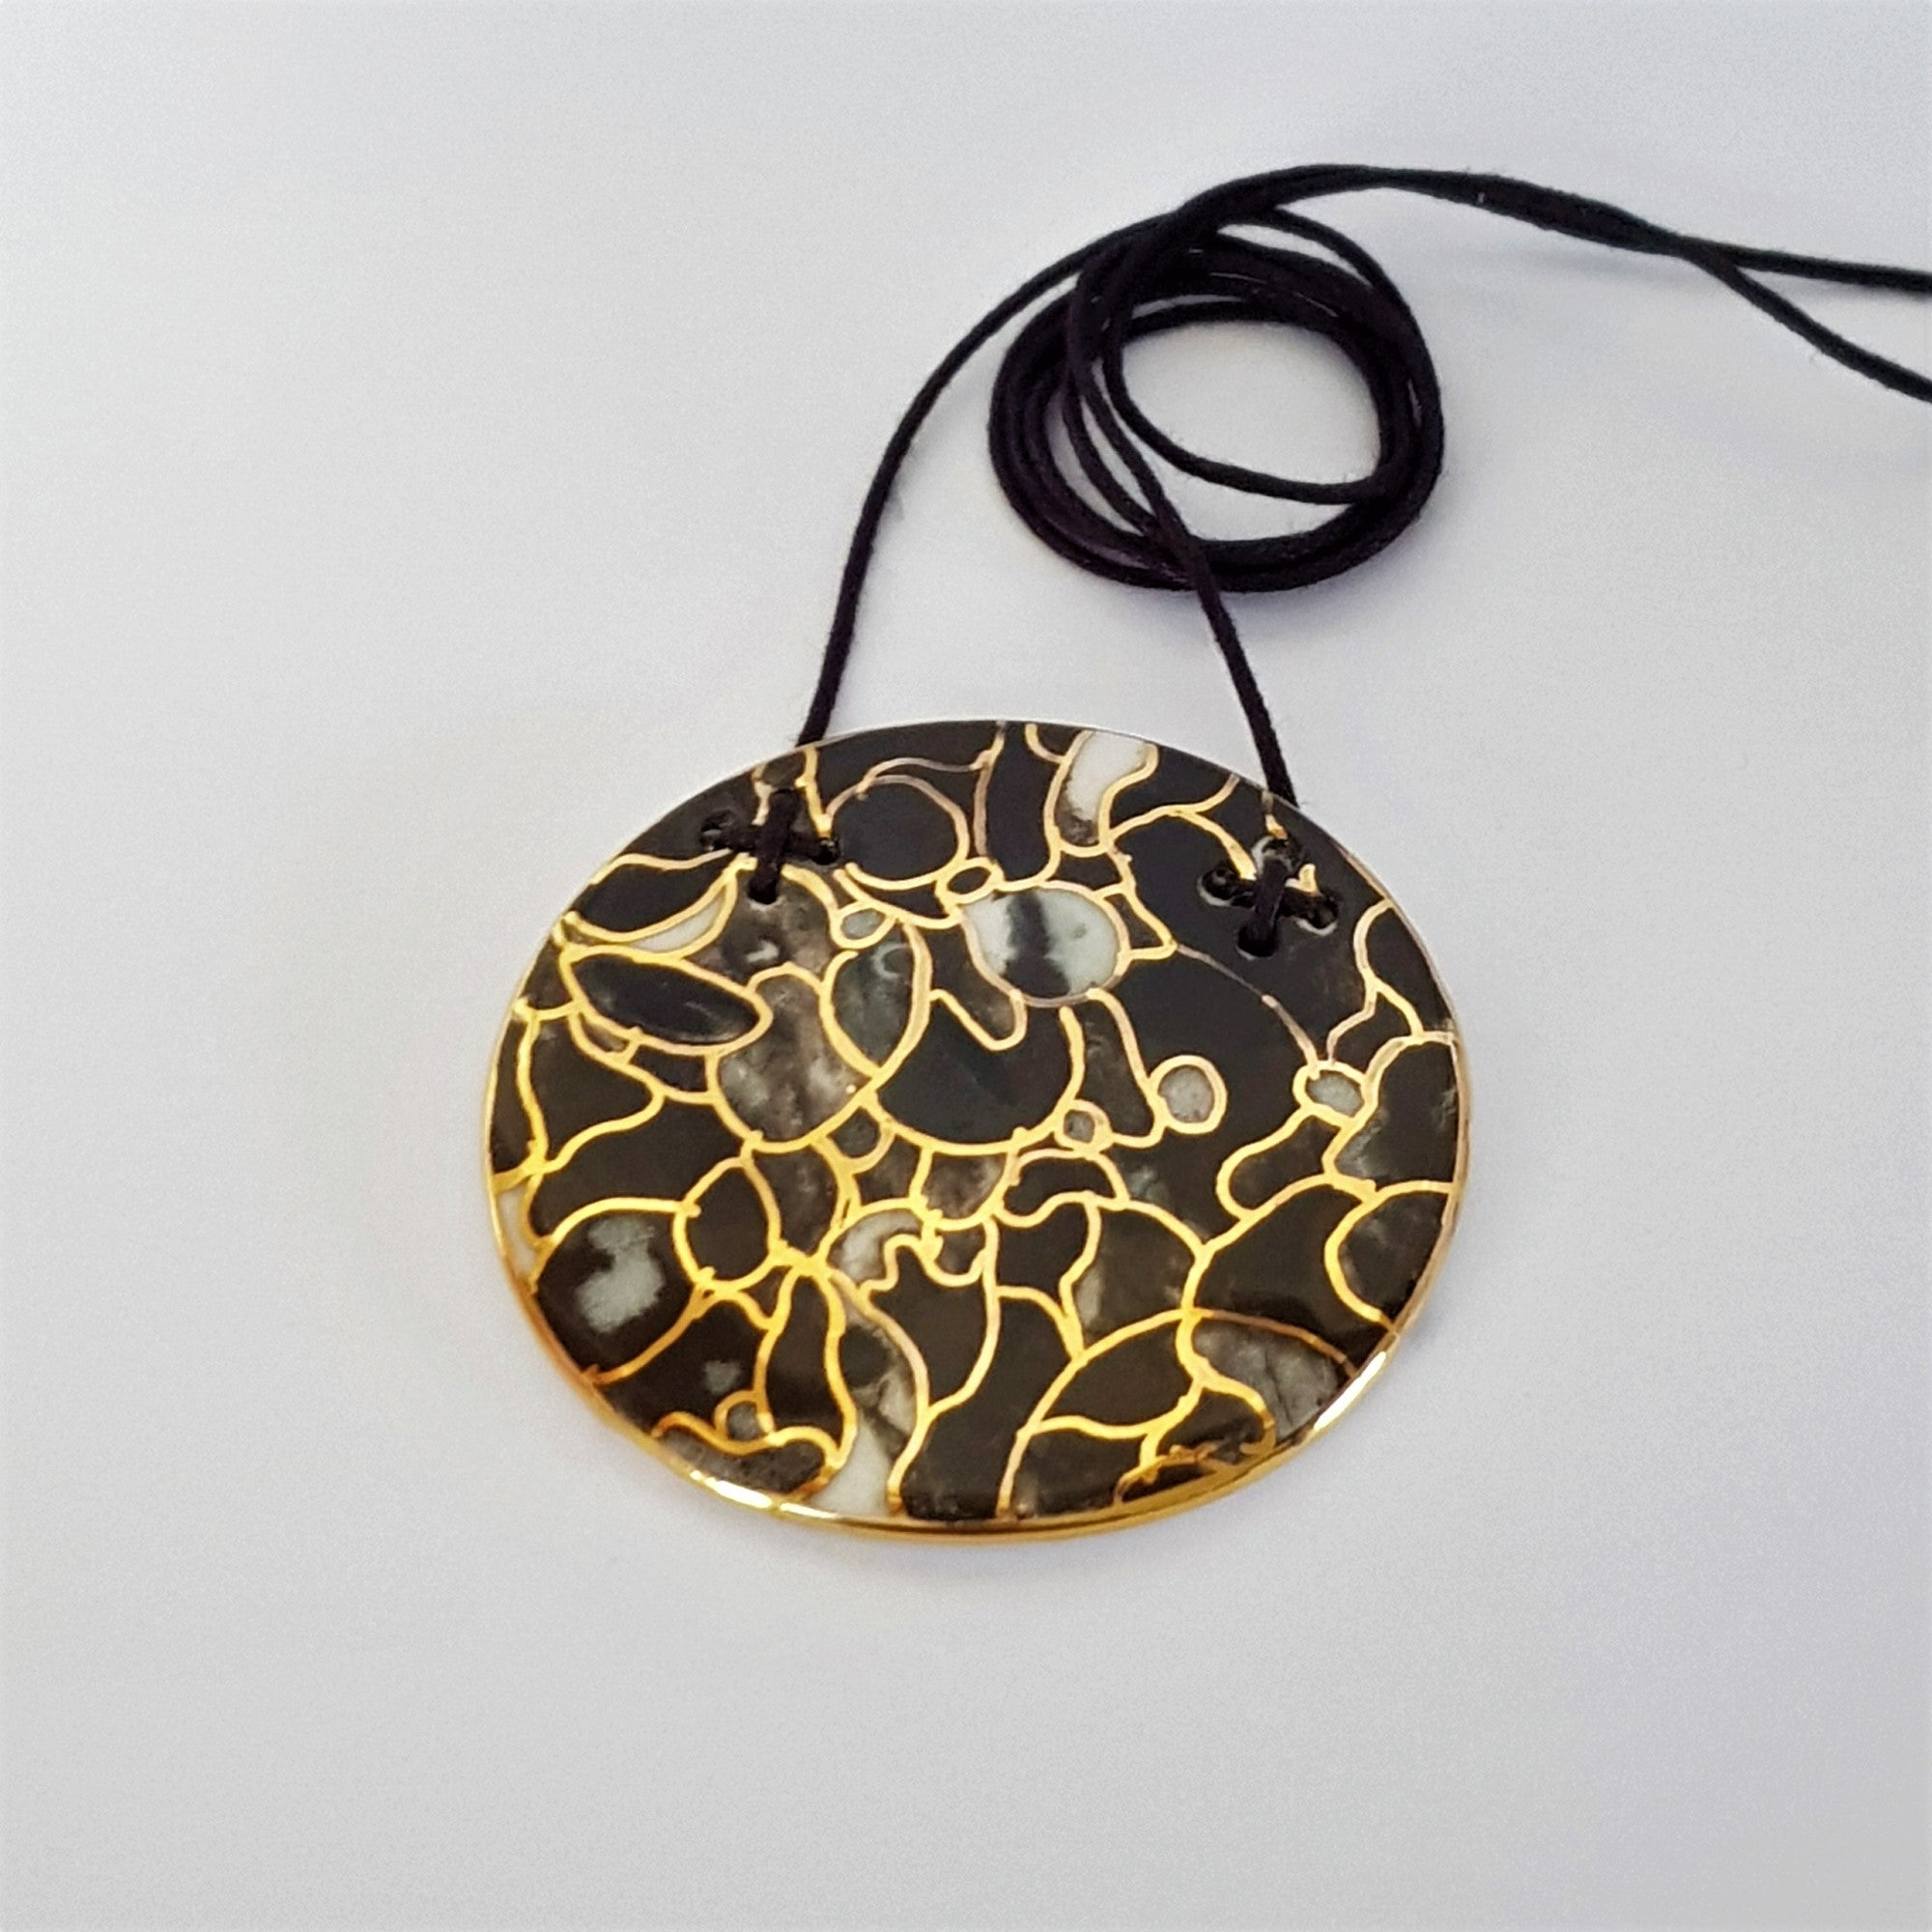 Large round pendant in black and gold abstract pattern